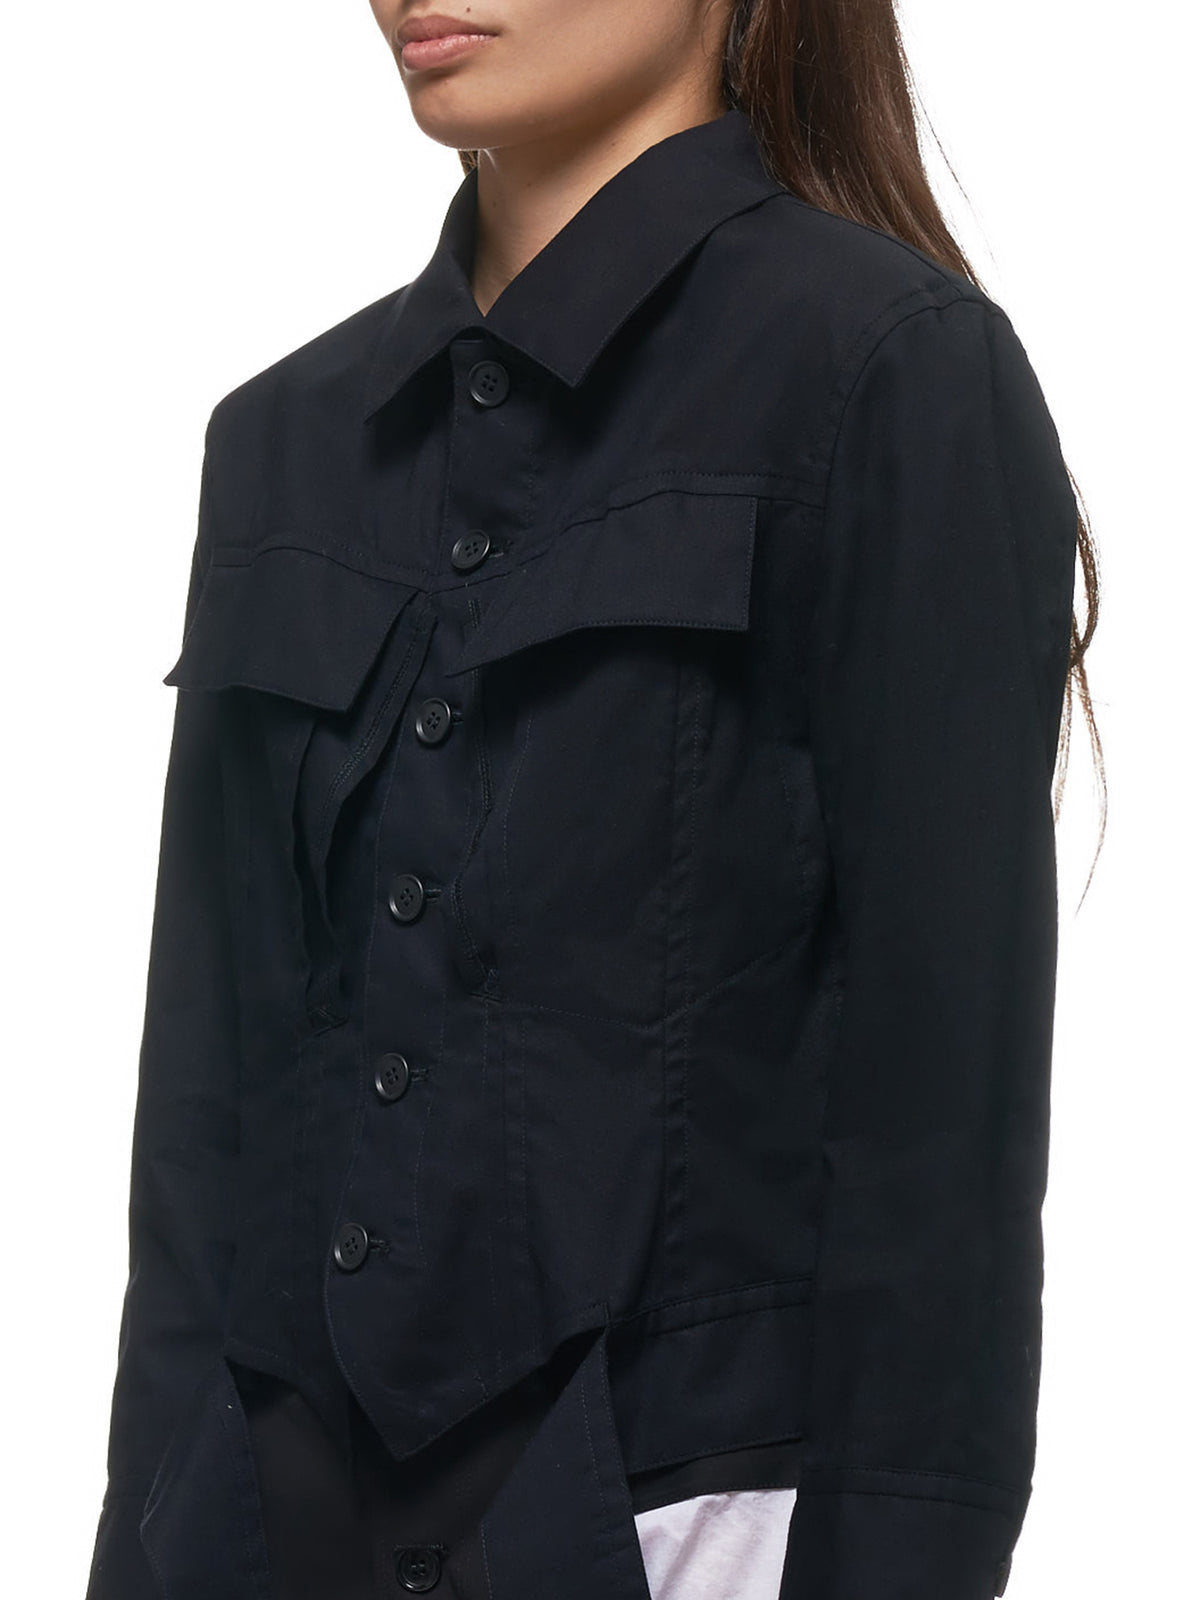 Dainty Trucker Shirt Jacket (LN-J03-010-BLACK)